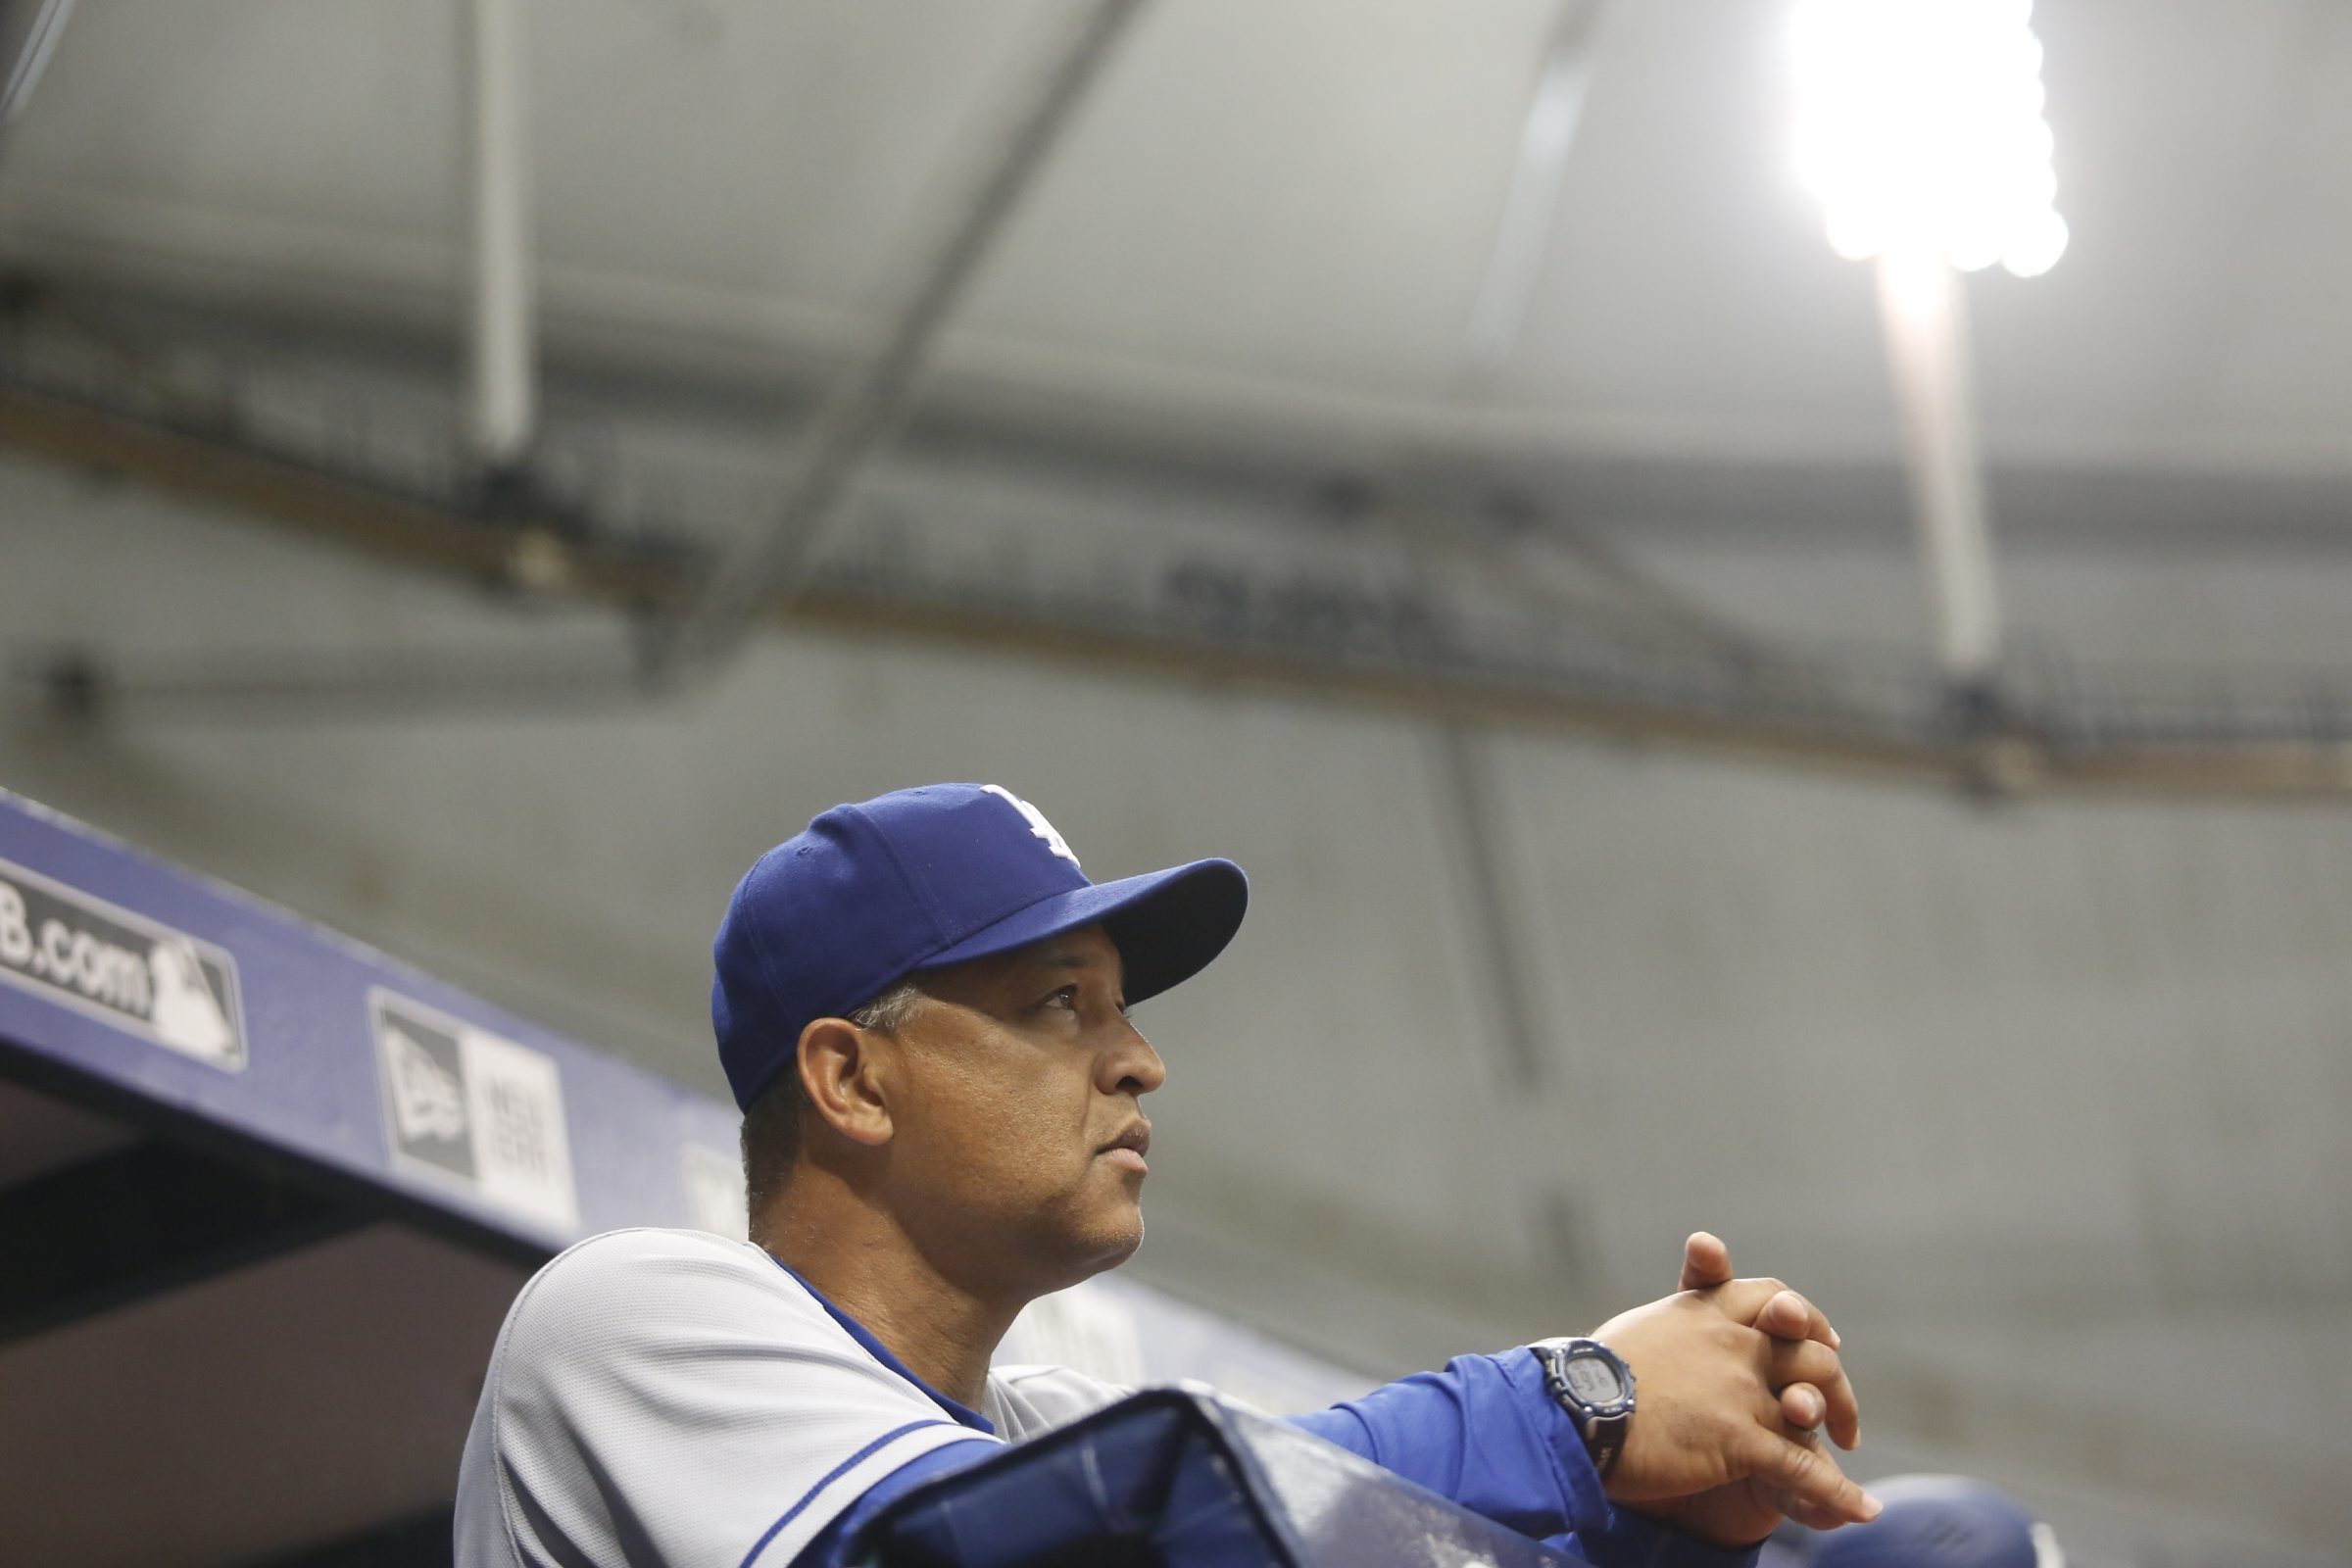 ST. PETERSBURG, FL - MAY 3:  Manager Dave Roberts #30 of the Los Angeles Dodgers looks on from the dugout during the first inning of a game against the Tampa Bay Rays on May 3, 2016 at Tropicana Field in St. Petersburg, Florida. (Photo by Brian Blanco/Getty Images)